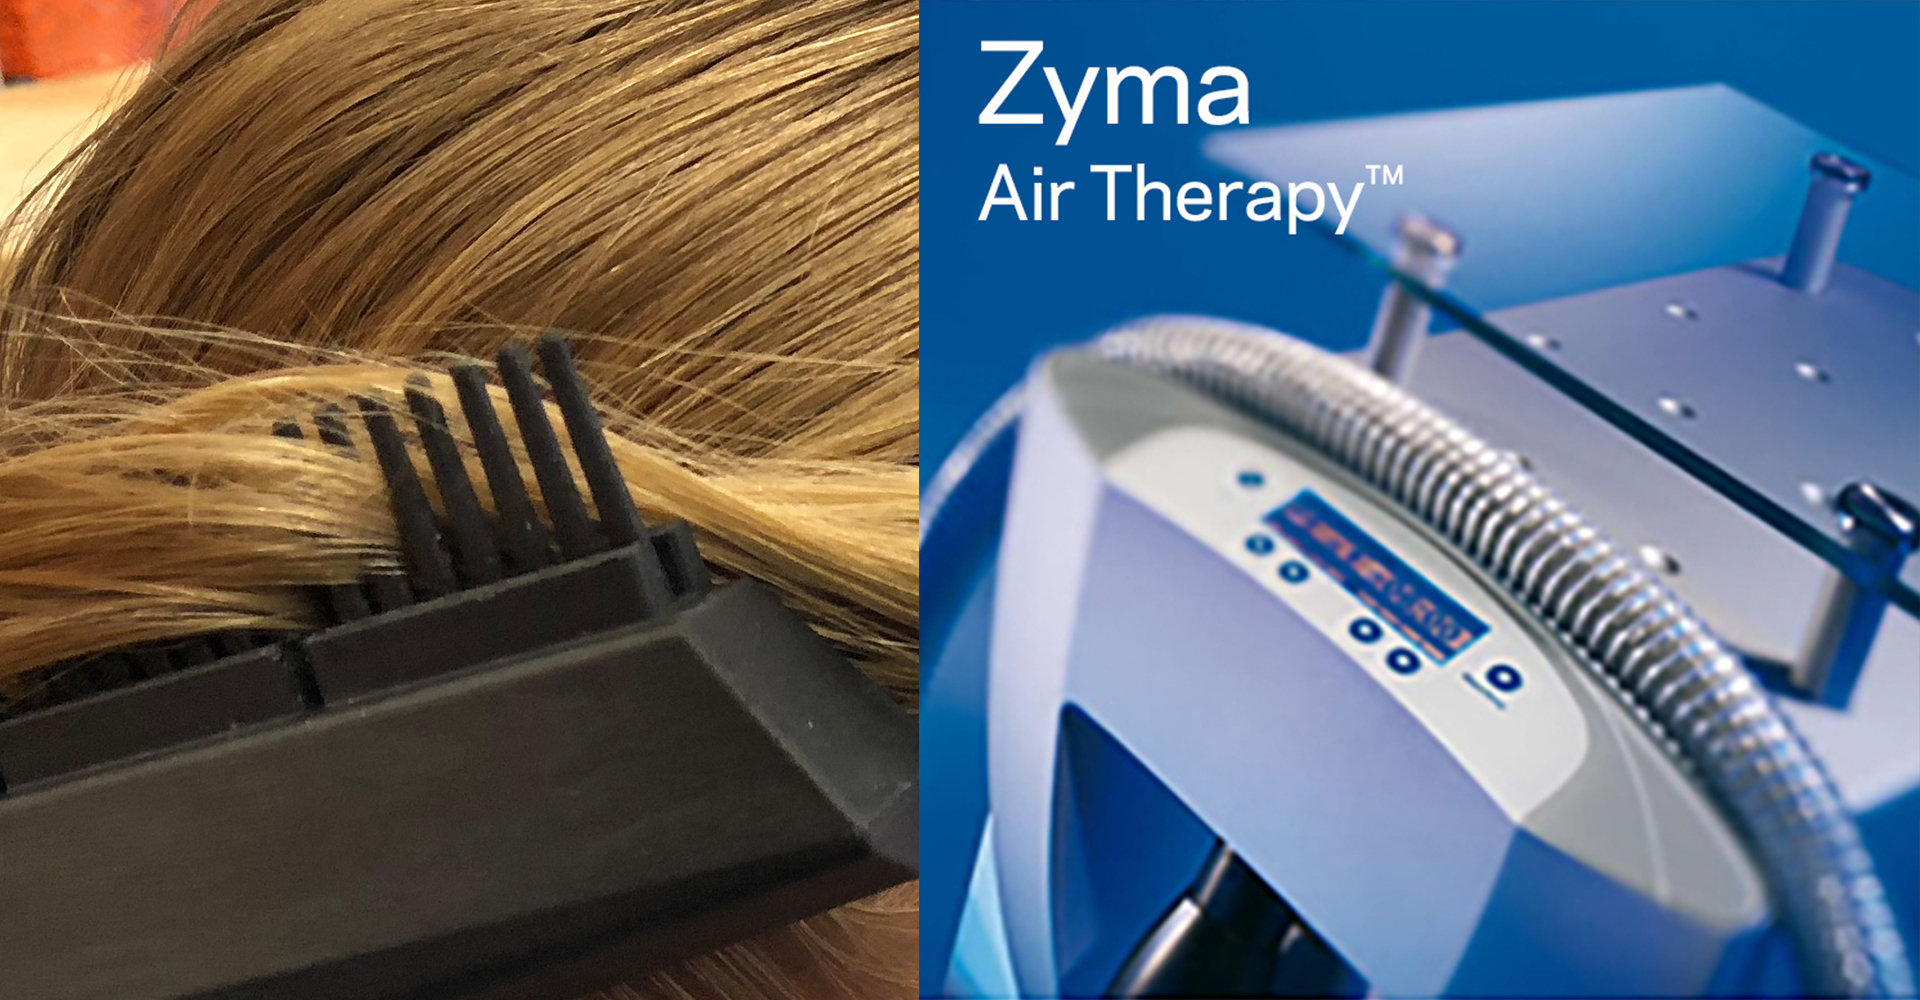 Zyma Air Therapy